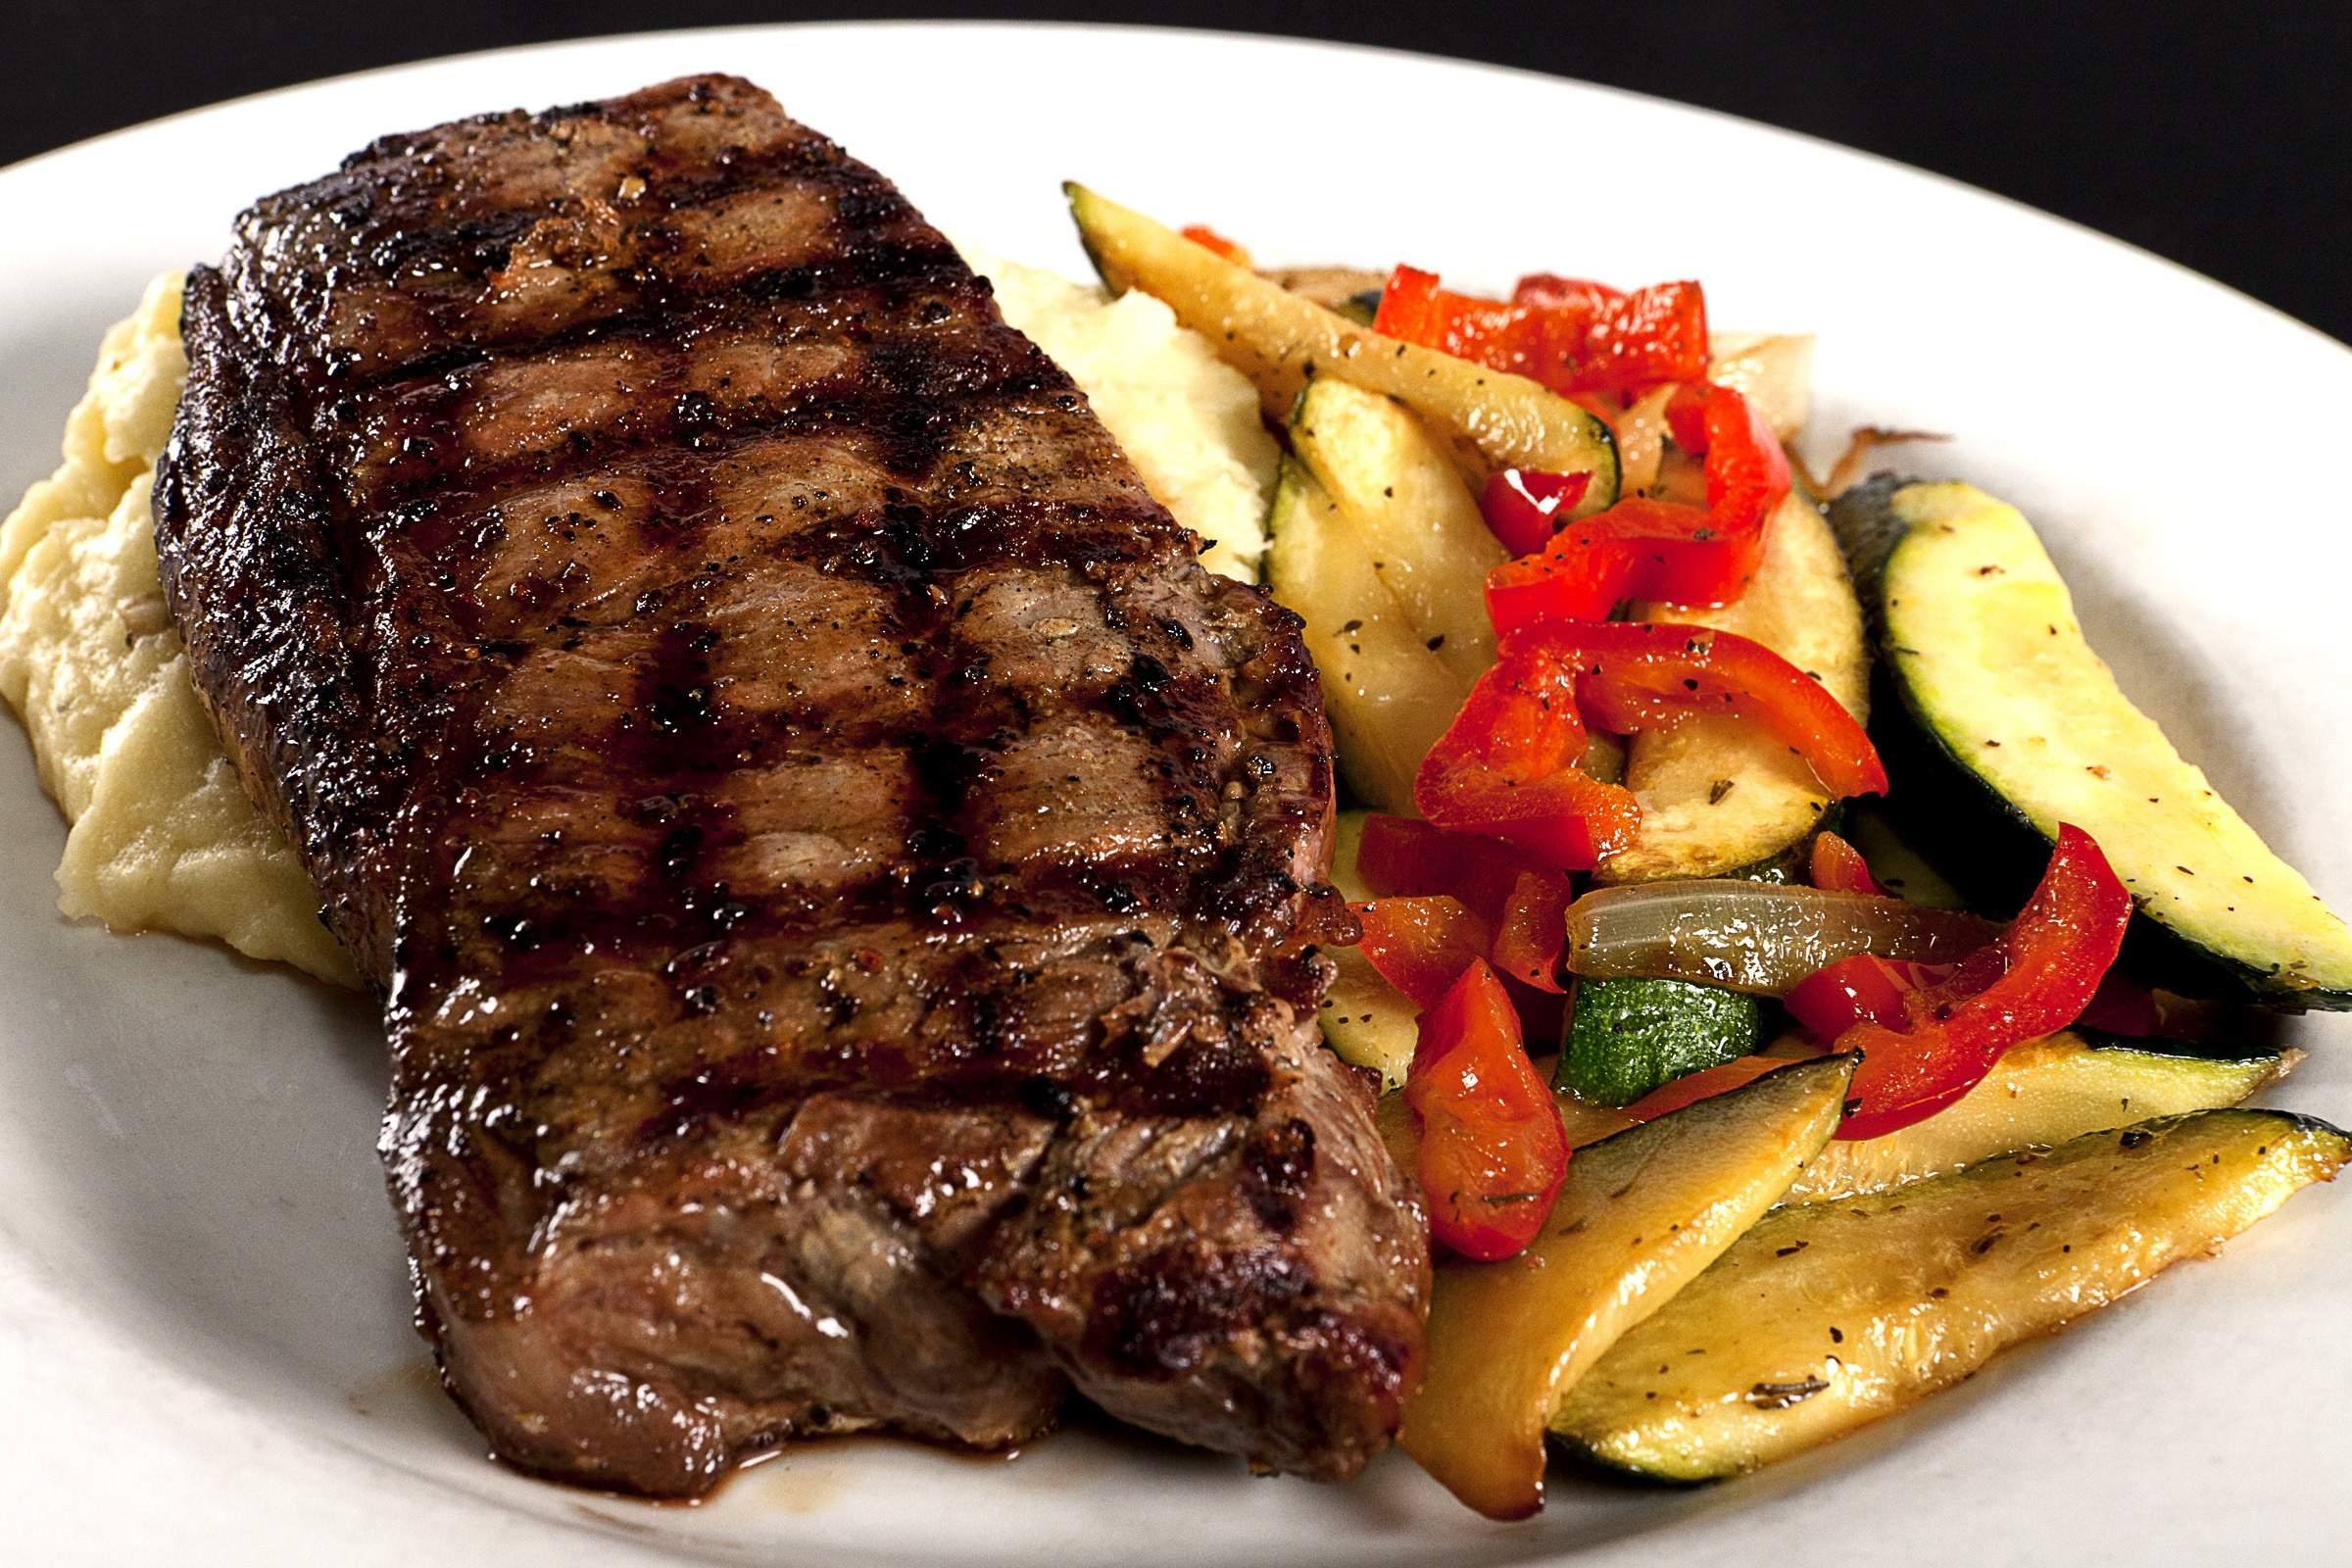 Montana Steakhouse the 8 ounce New York Strip served with salad and your choice of two sides at The Club Tavern and Grill Bozeman Montana